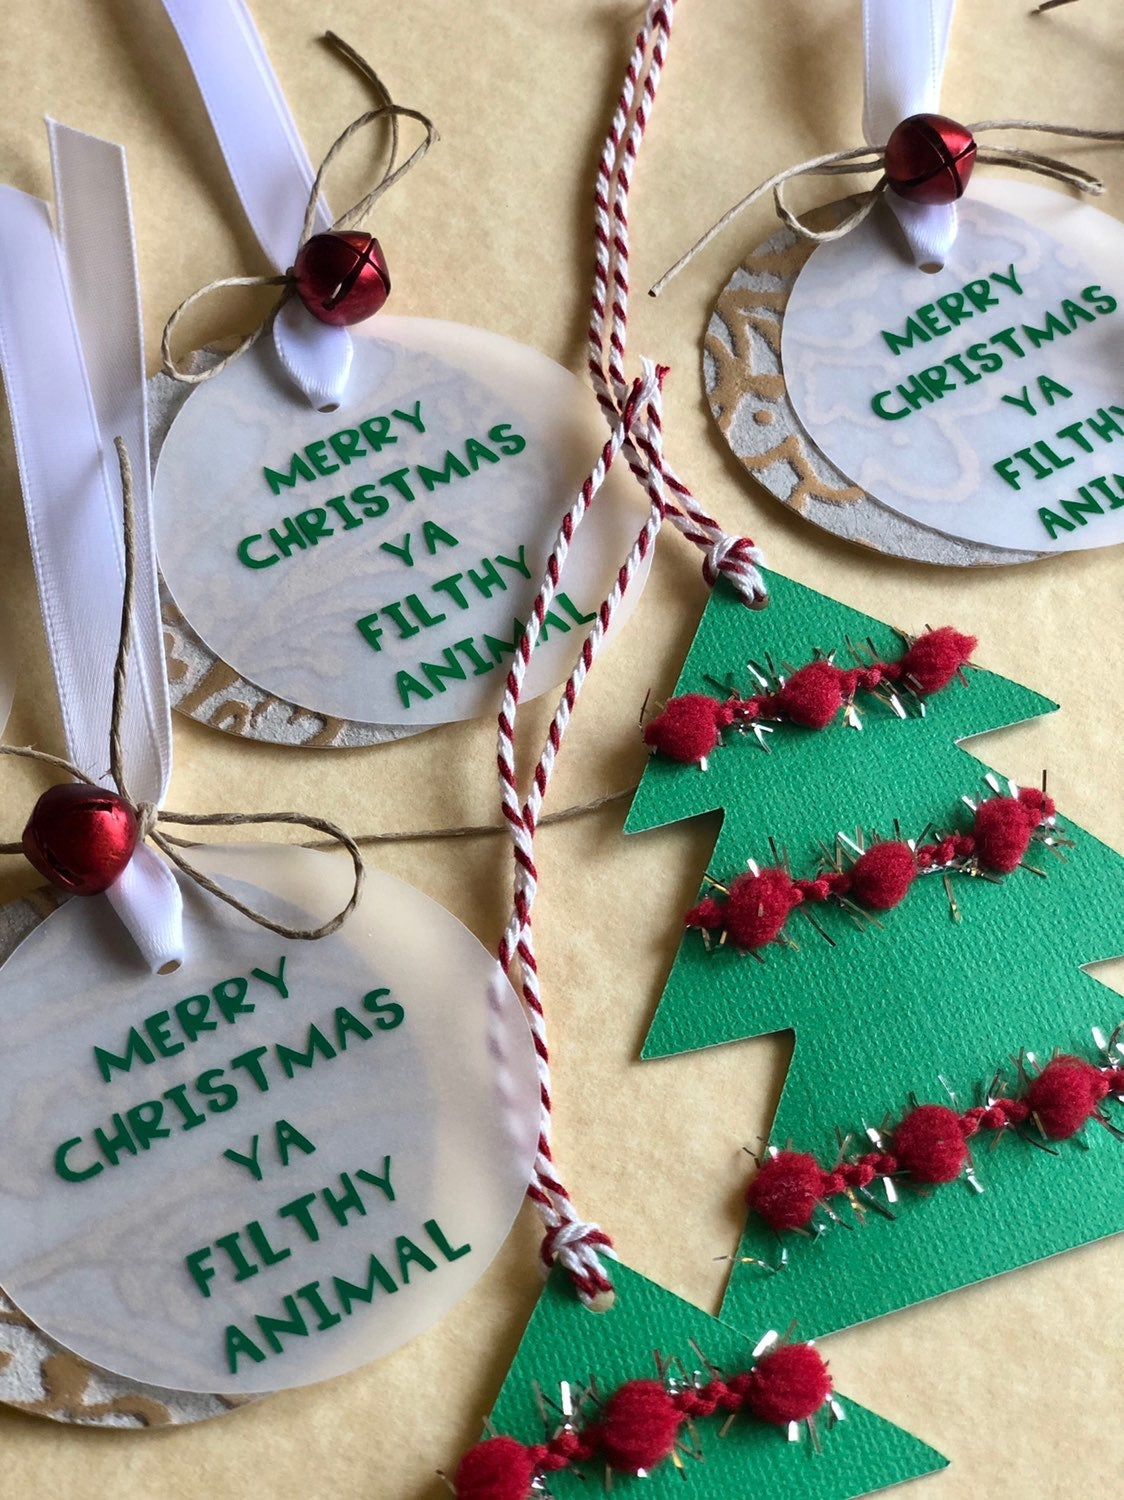 Gift Tags - Home Alone Themed